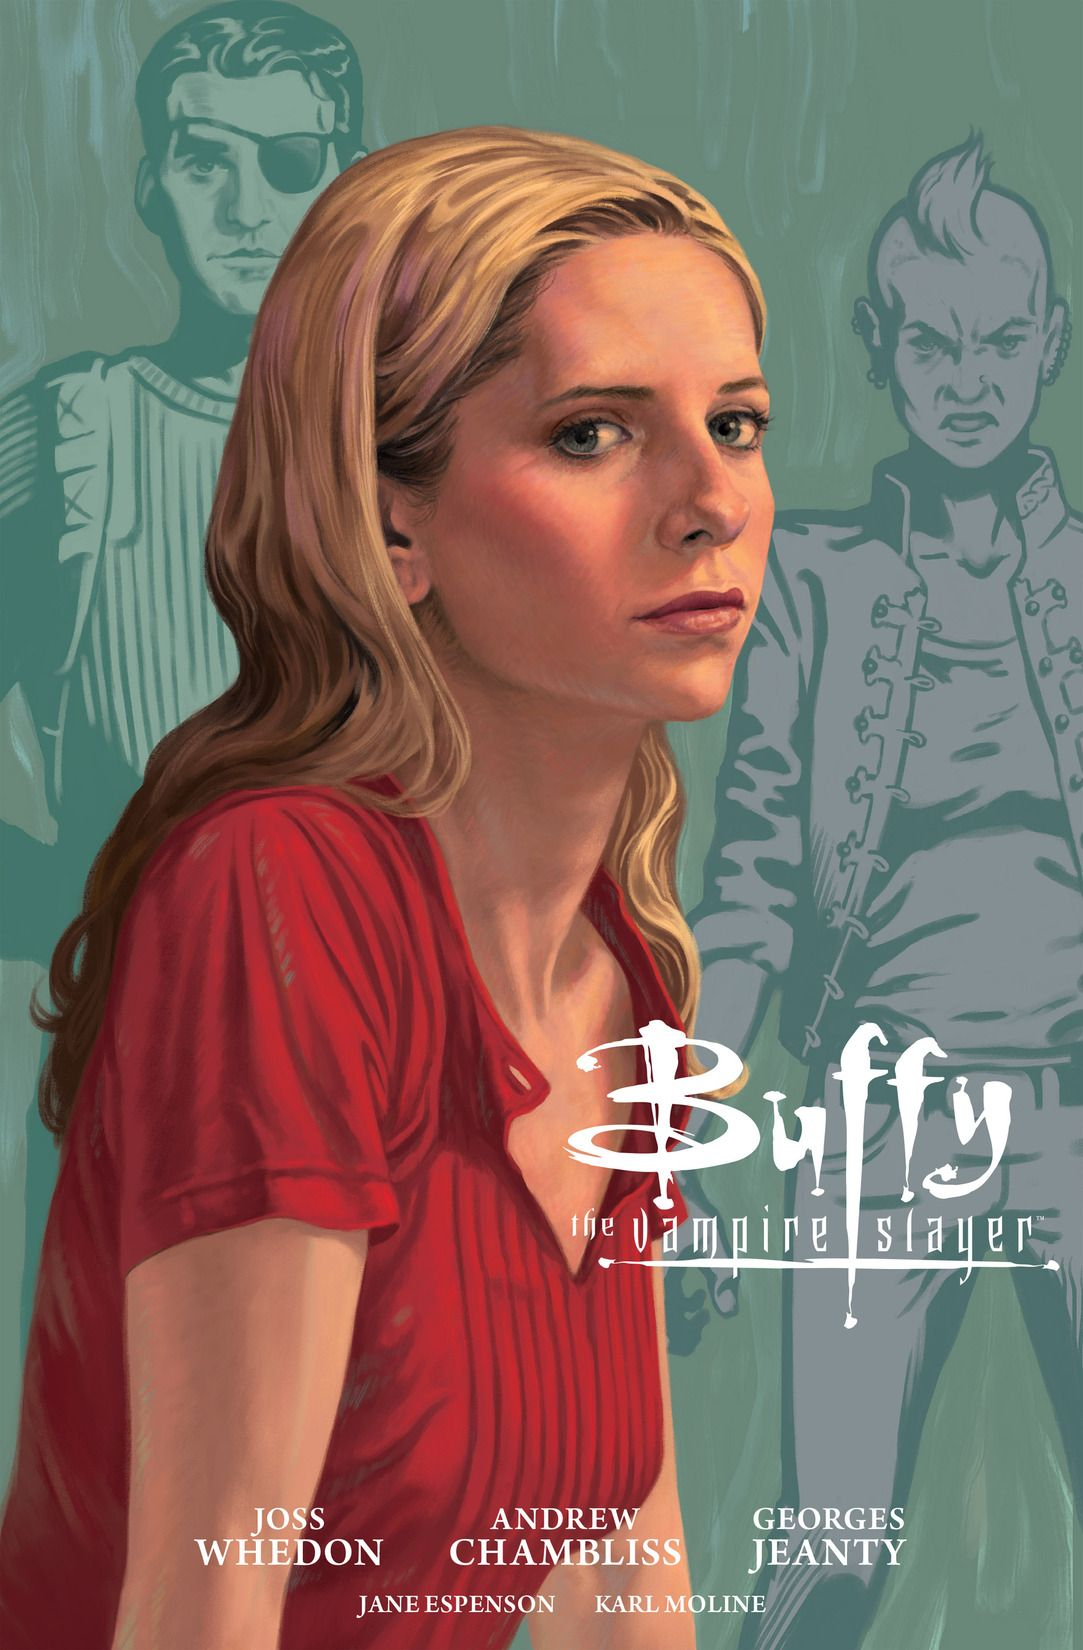 Buffy the Vampire Slayer Season Nine Library Edition, Volume 3